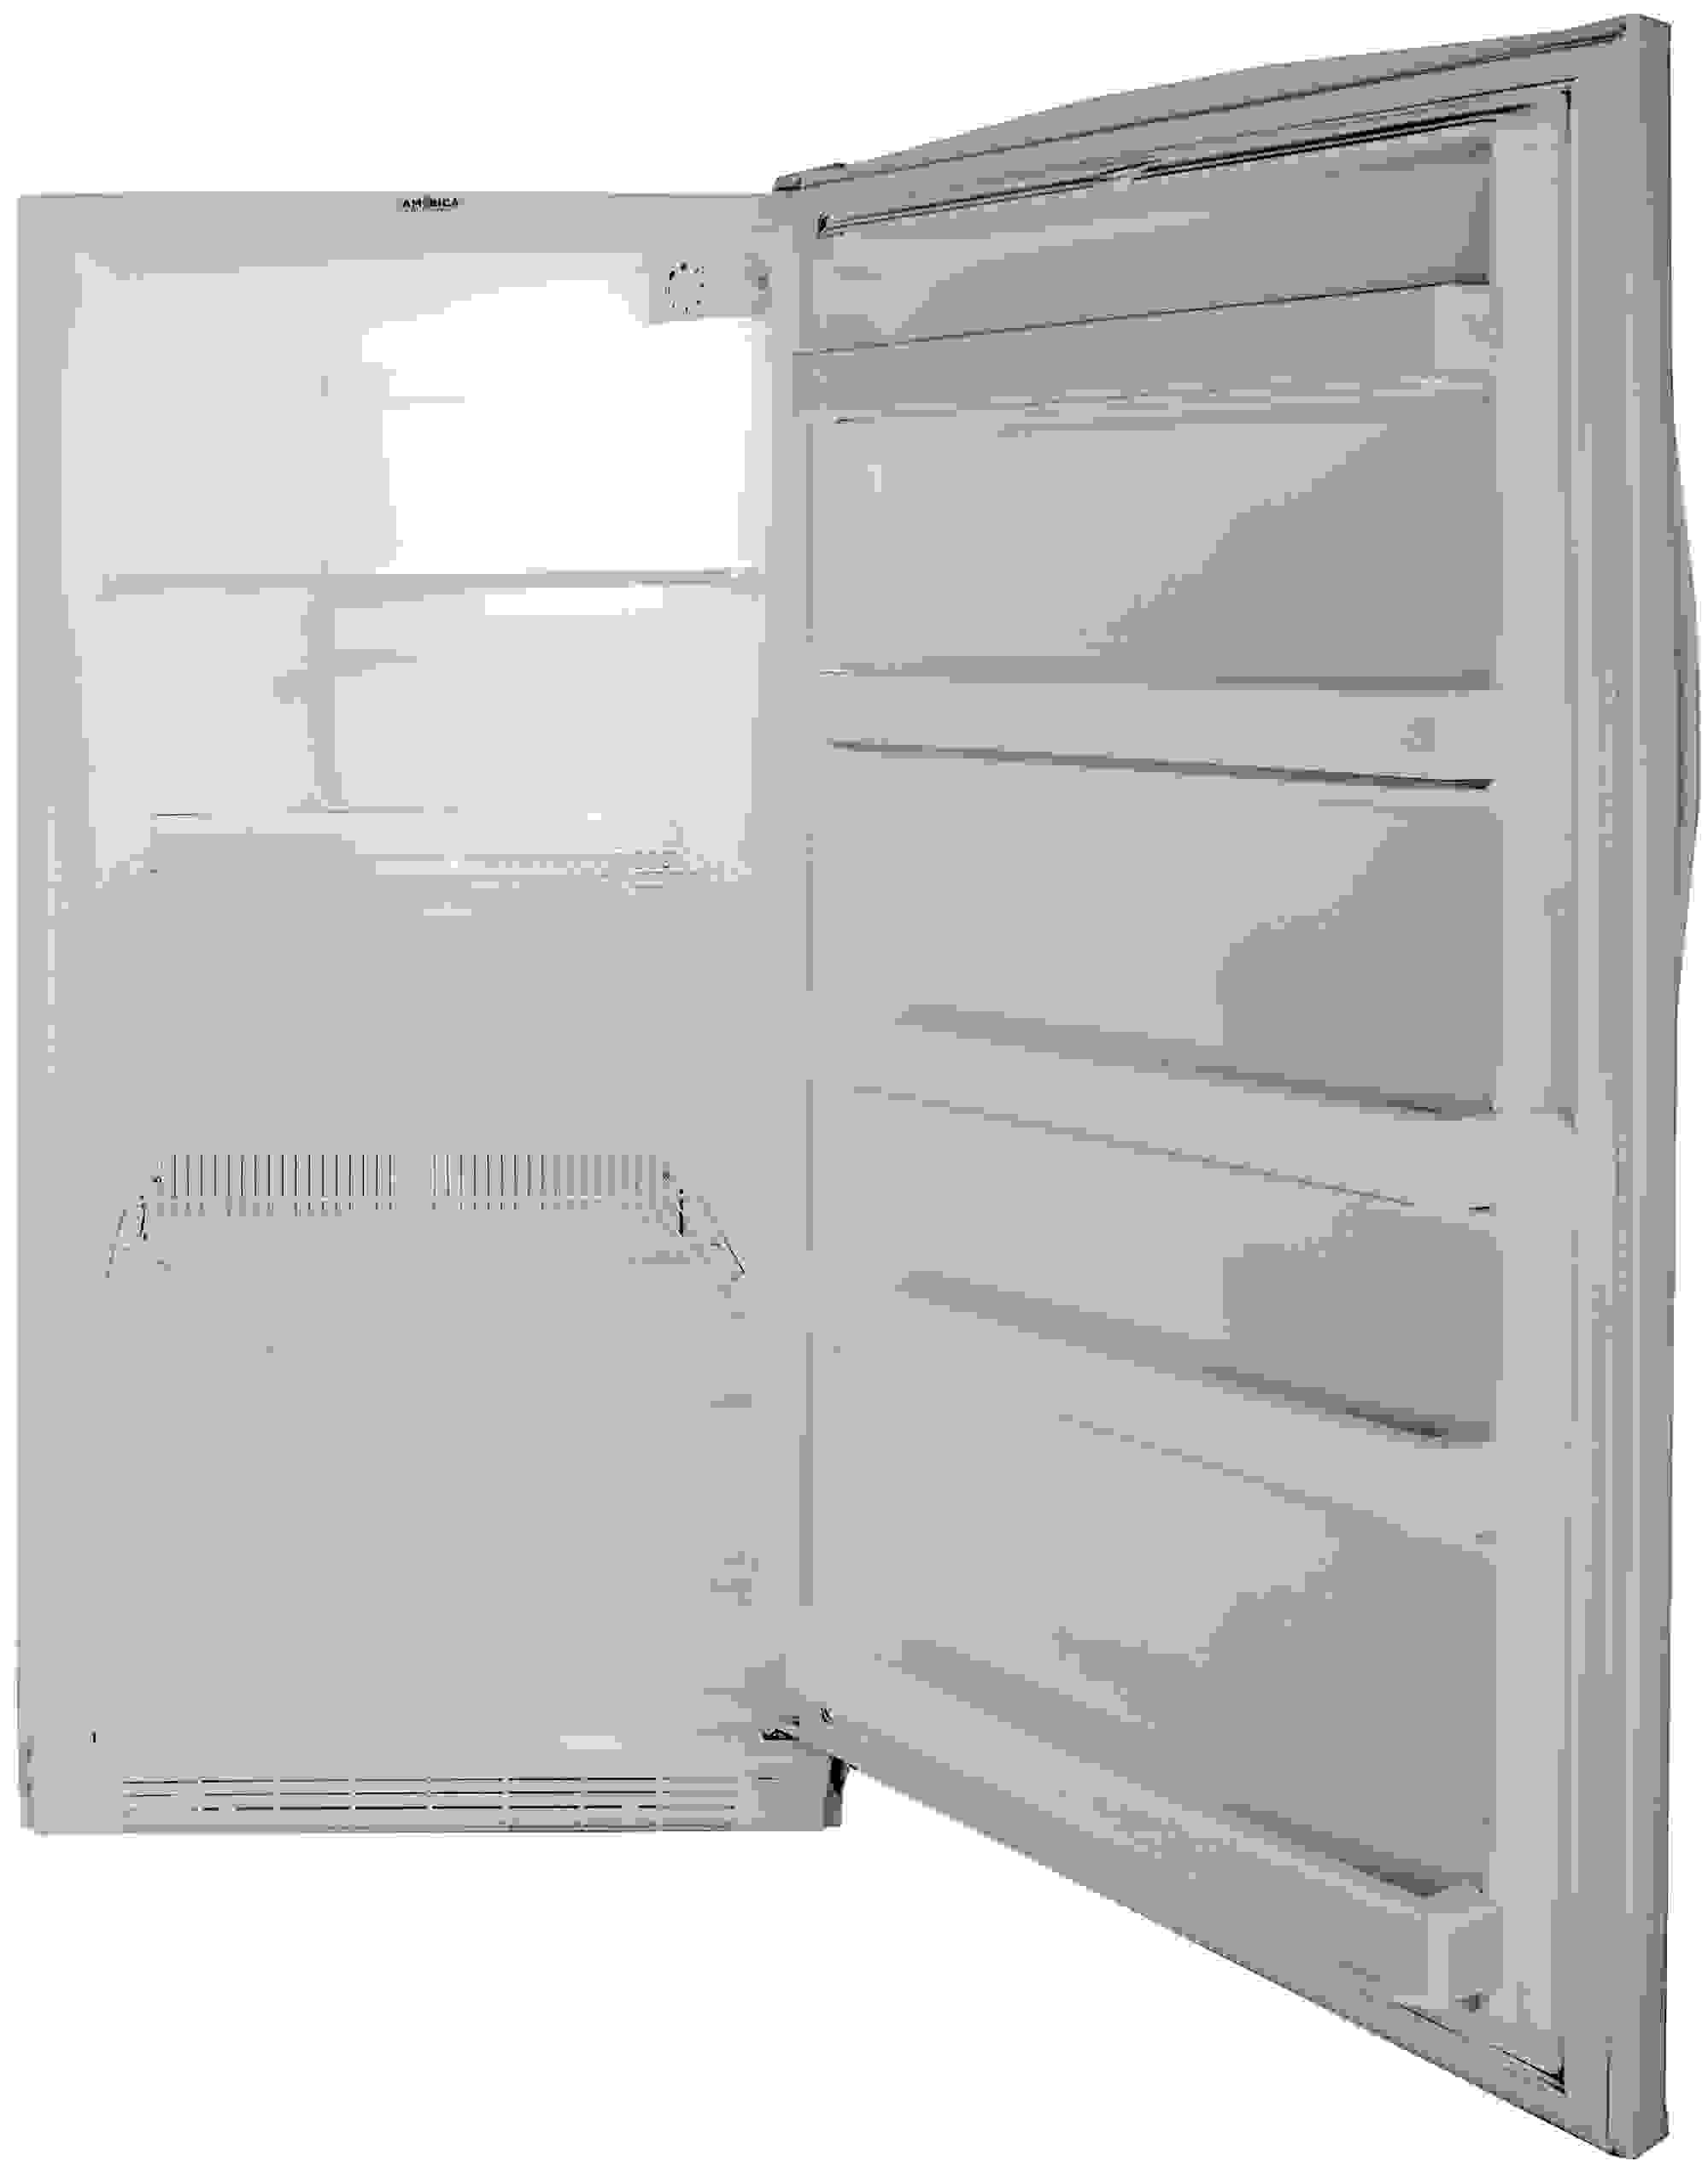 All of the Whirlpool EV160NZTQ's internal storage is completely immobile.